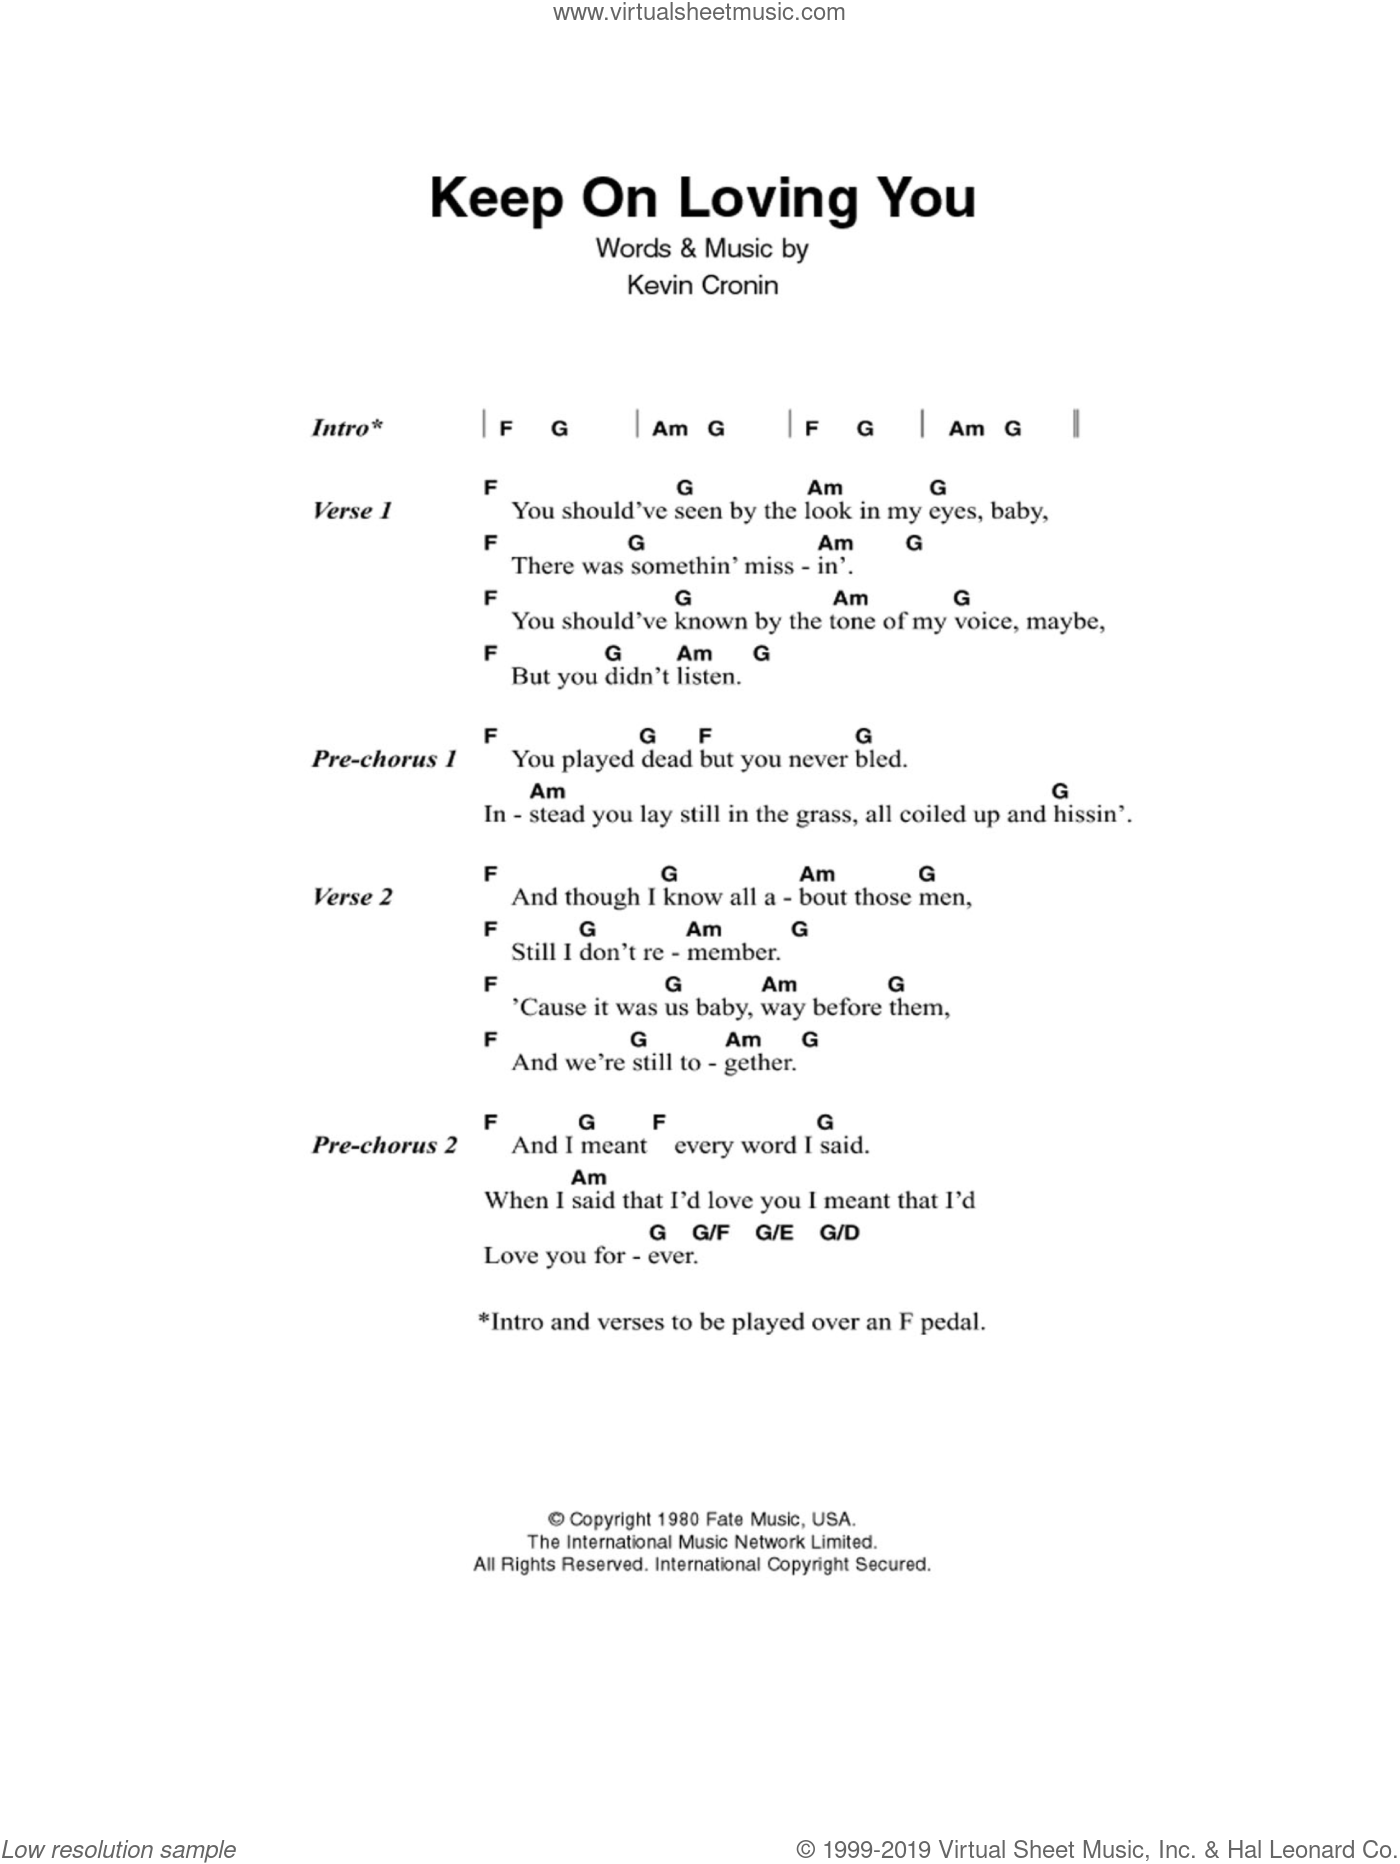 Keep On Loving You sheet music for guitar (chords) by Kevin Cronin. Score Image Preview.